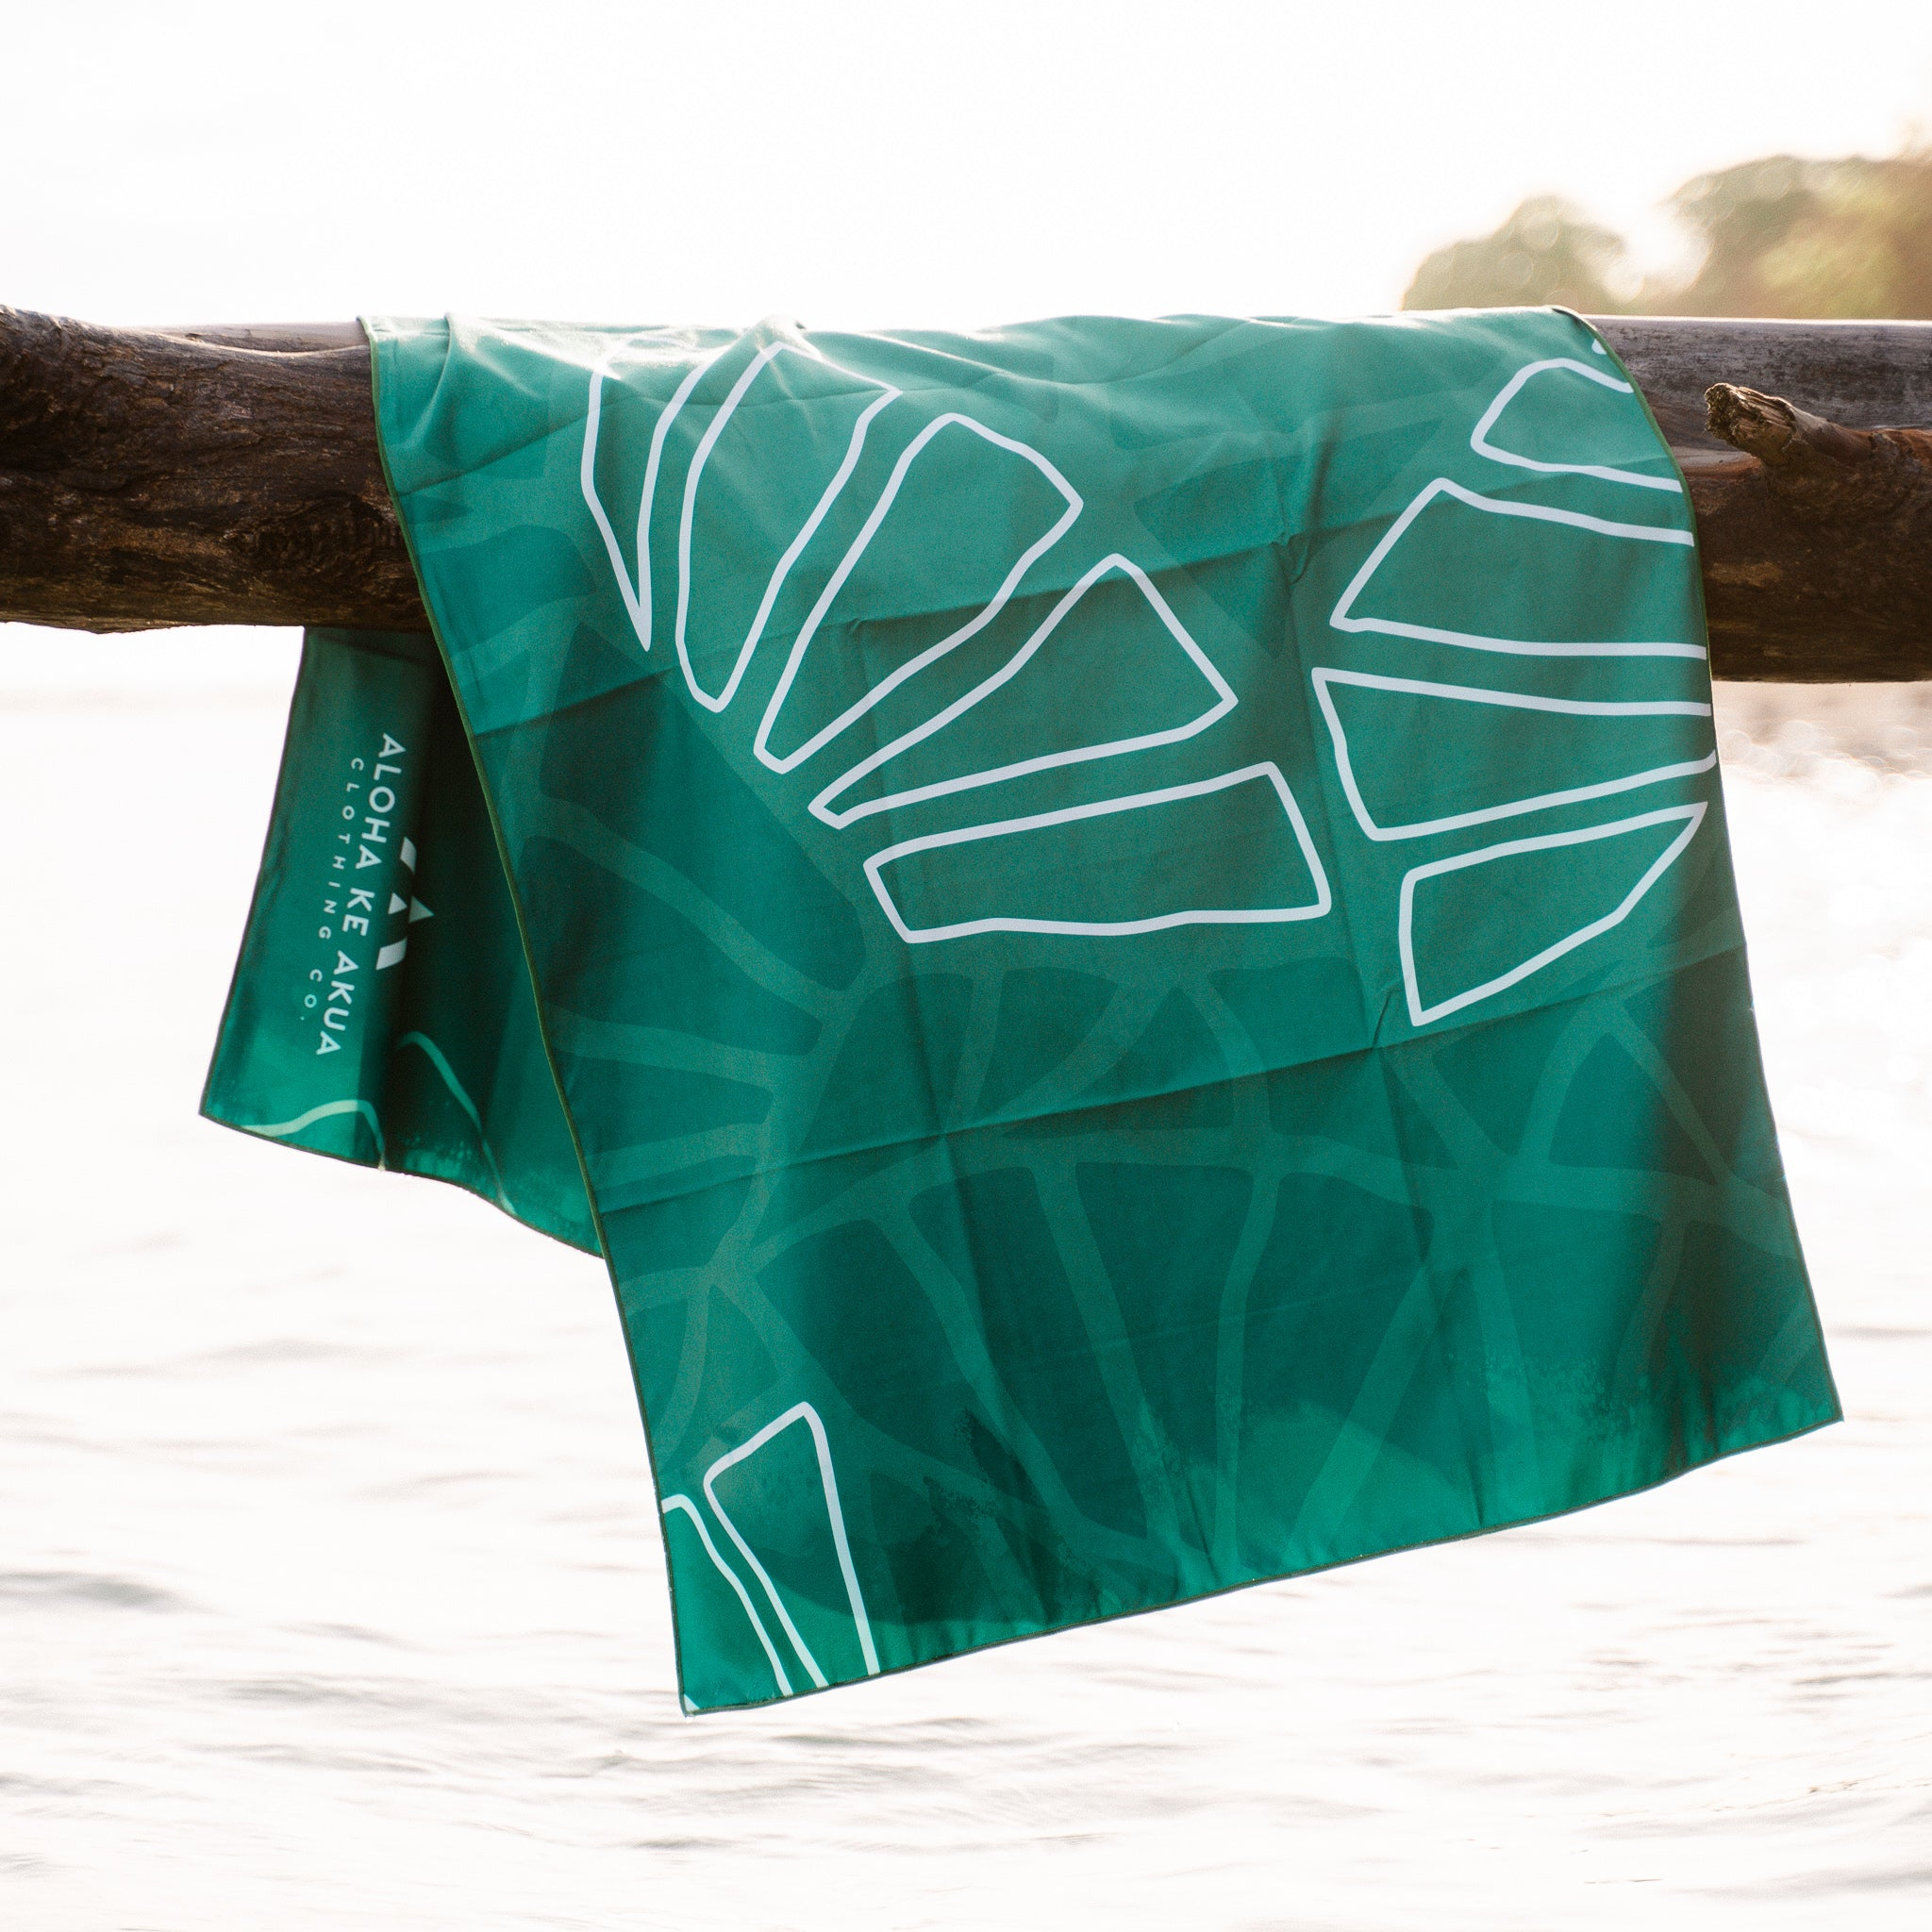 Kalo Beach Towel Pattern Hanging over water